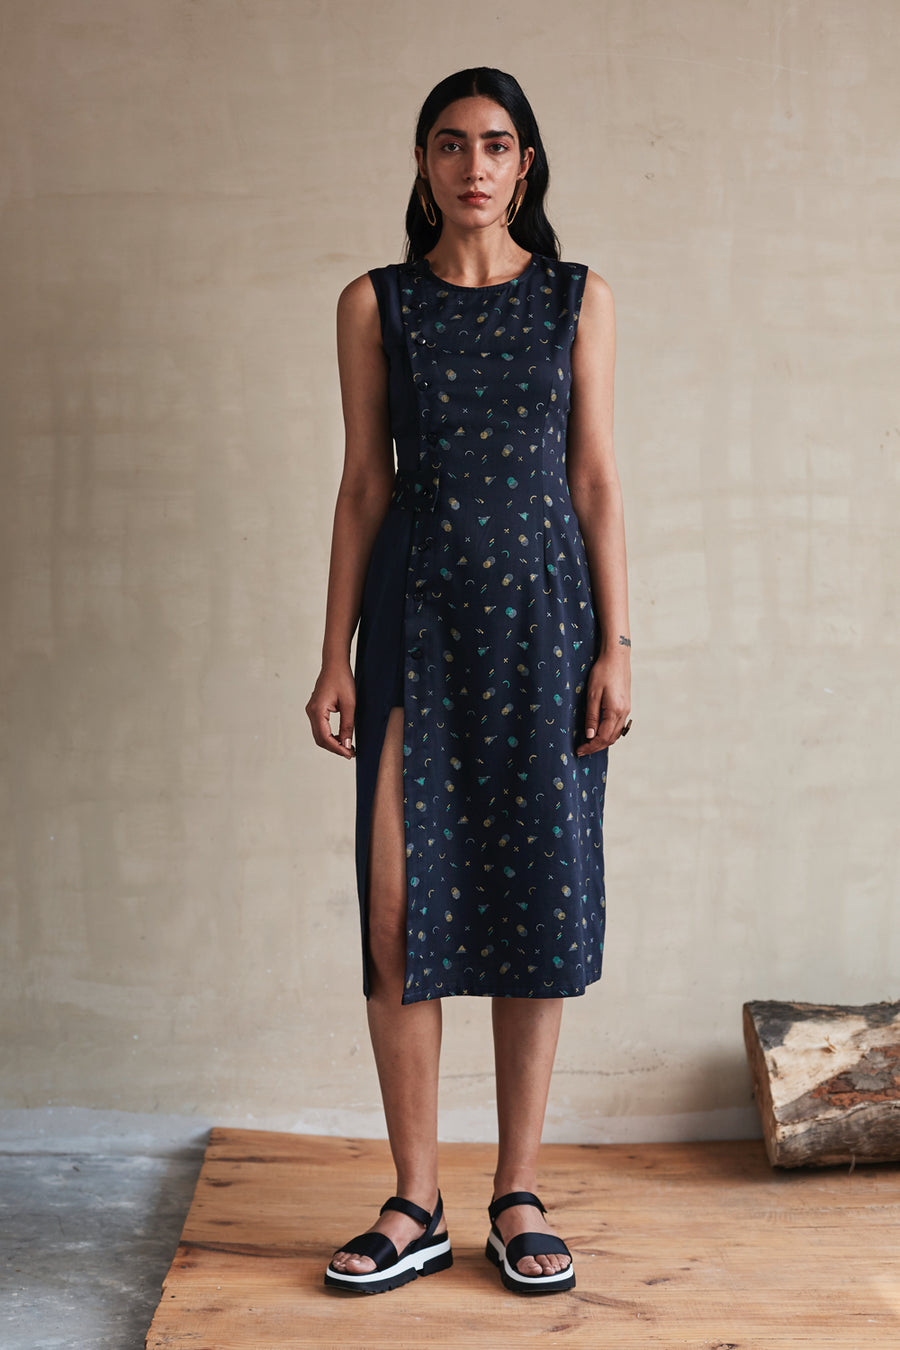 The Split-in-Two Wrap Dress (Set) - Ethical made fashion - onlyethikal